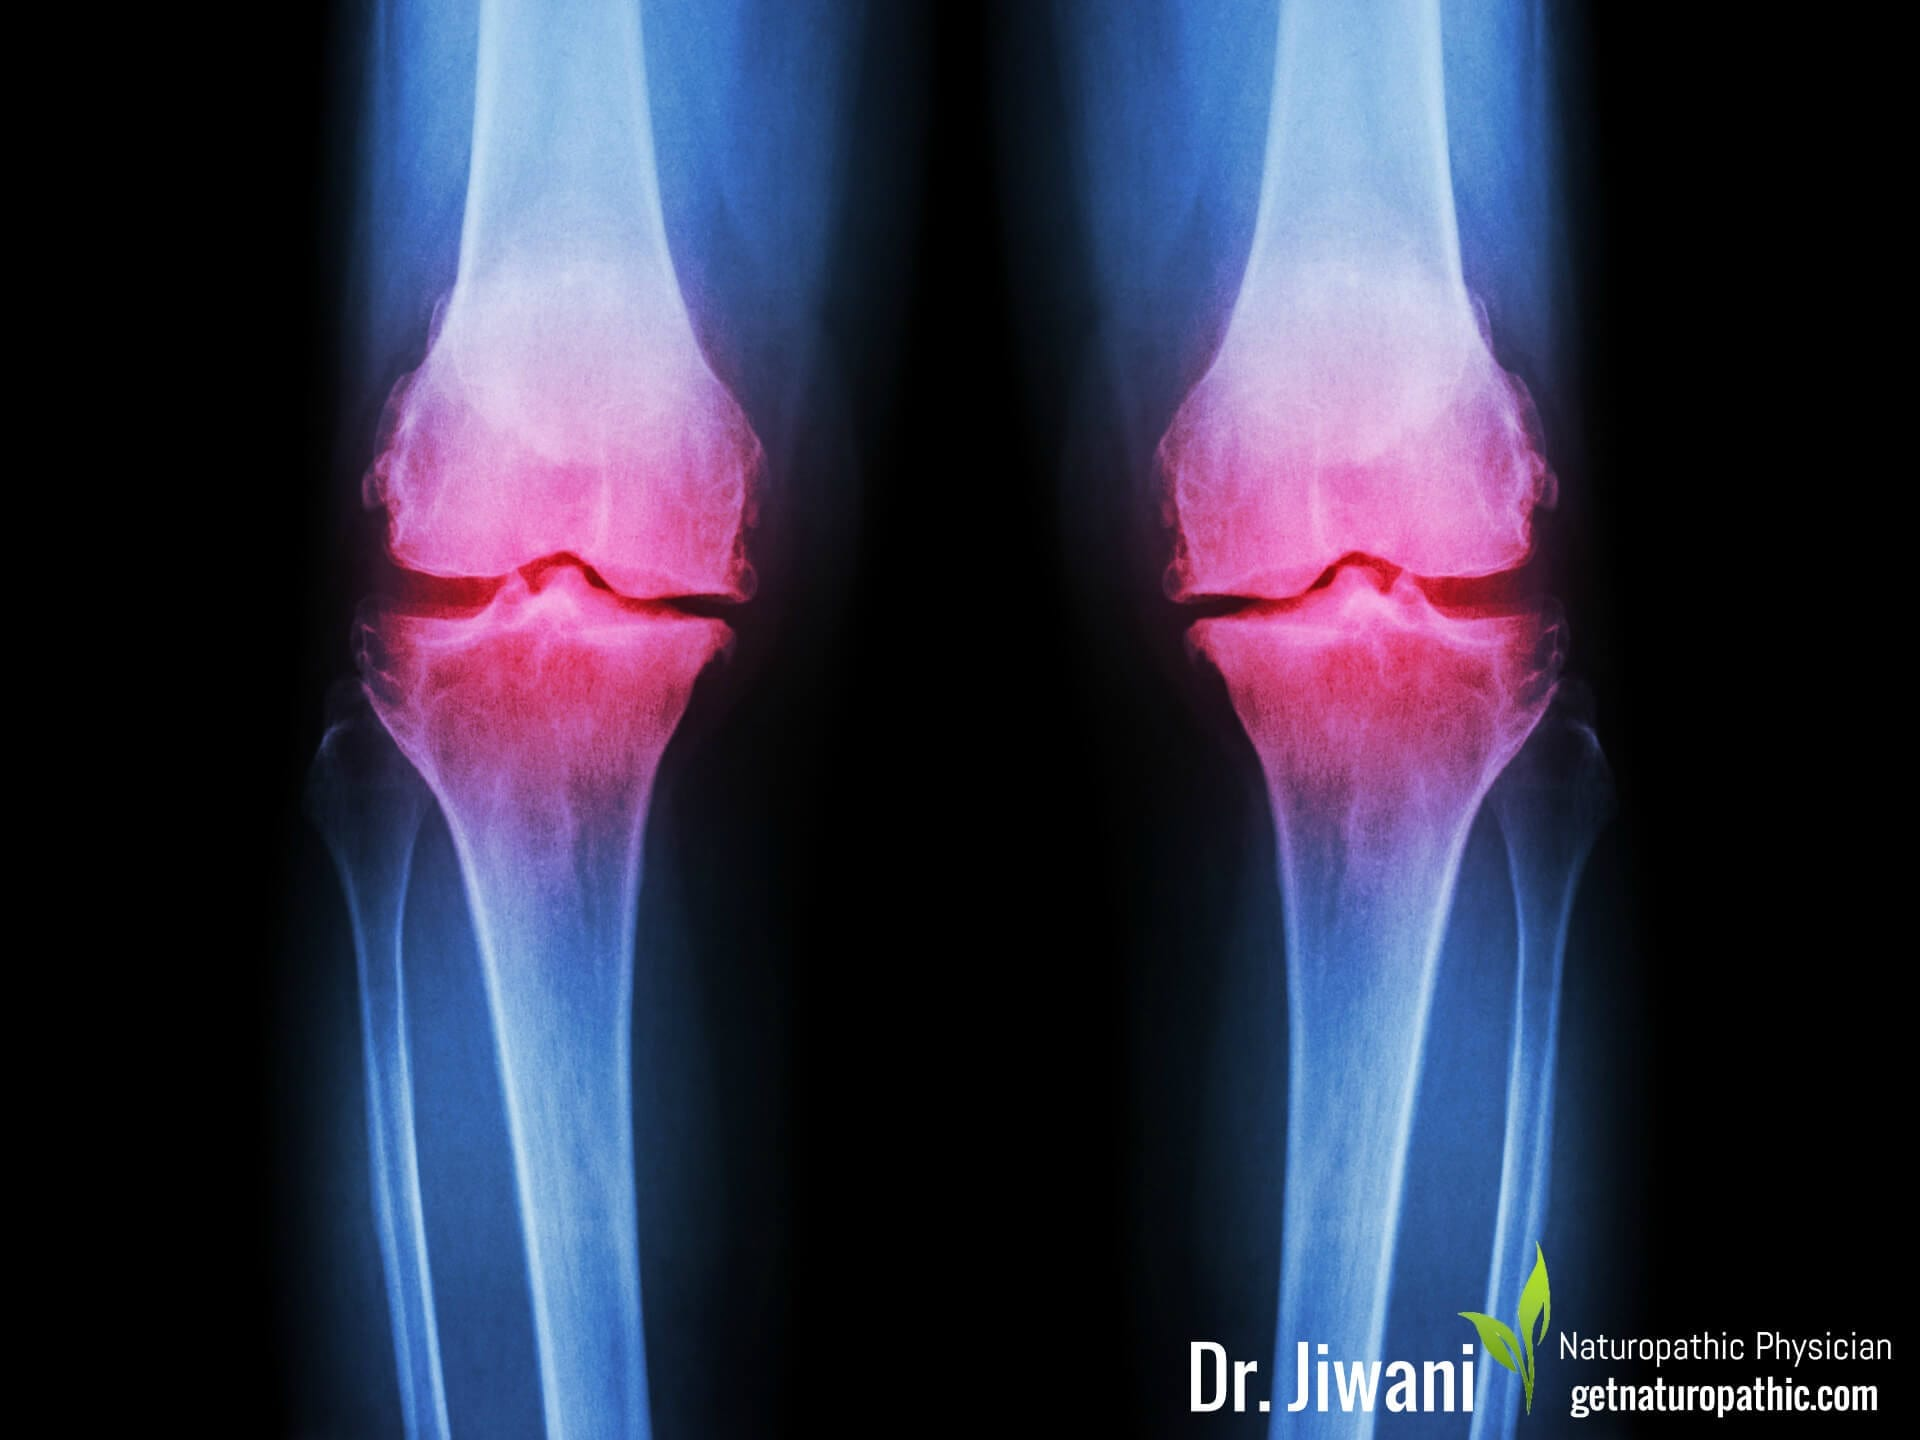 Prolozone Therapy: Natural Treatment for Joint Pain & Dysfunction | Dr. Jiwani's Naturopathic Nuggets Blog